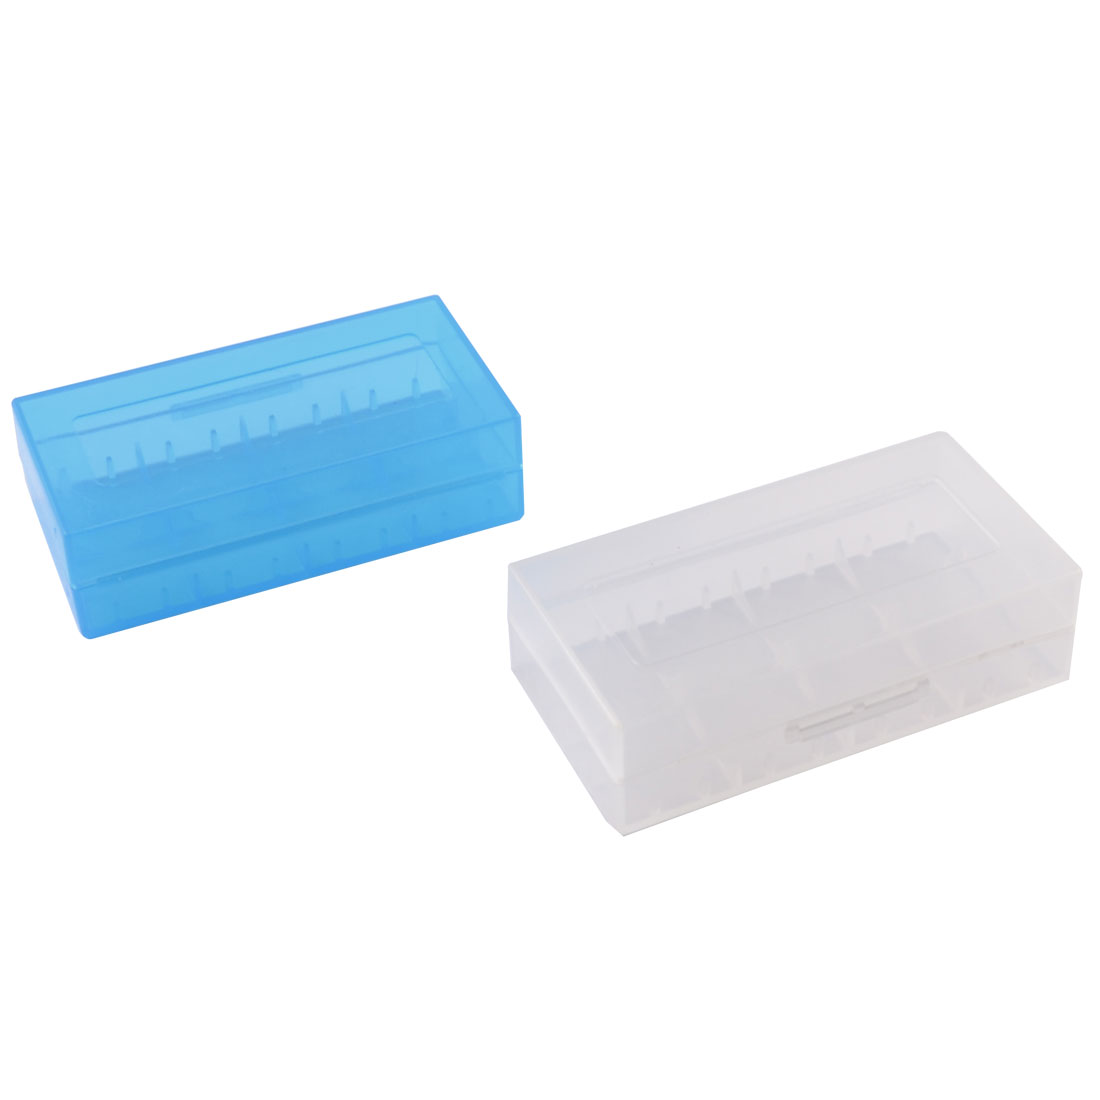 2 Pcs Plastic Light Blue White 18650 Battery Protective Case Holder